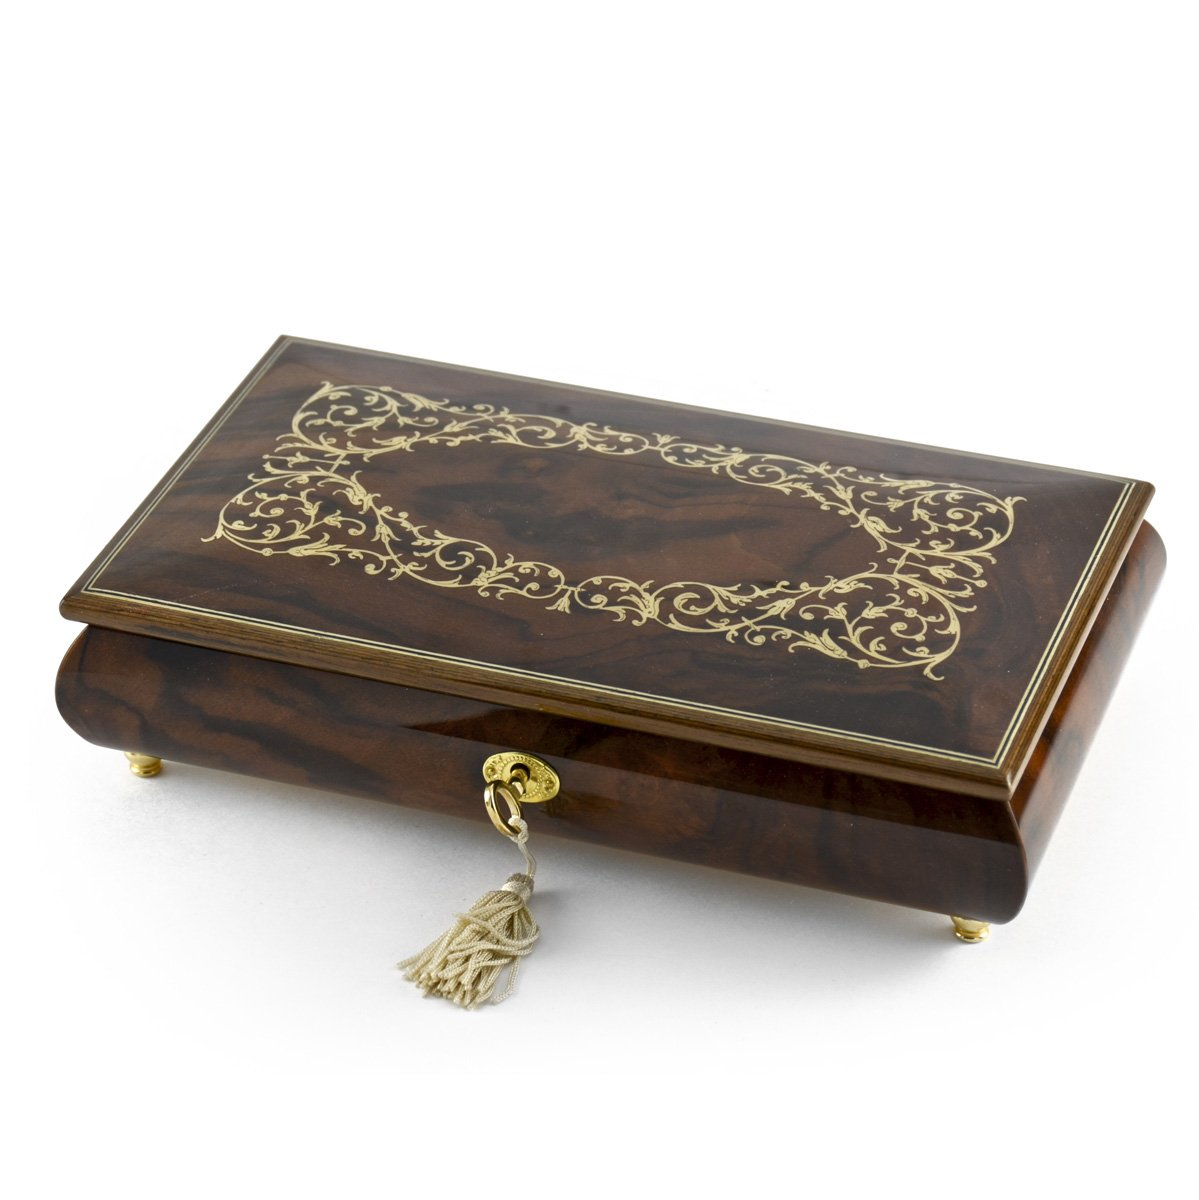 Extraordinary Handcrafted Arabesque Wood Inlay Musical Jewelry Box with Lock and Key - Can't Help Falling In Love with You